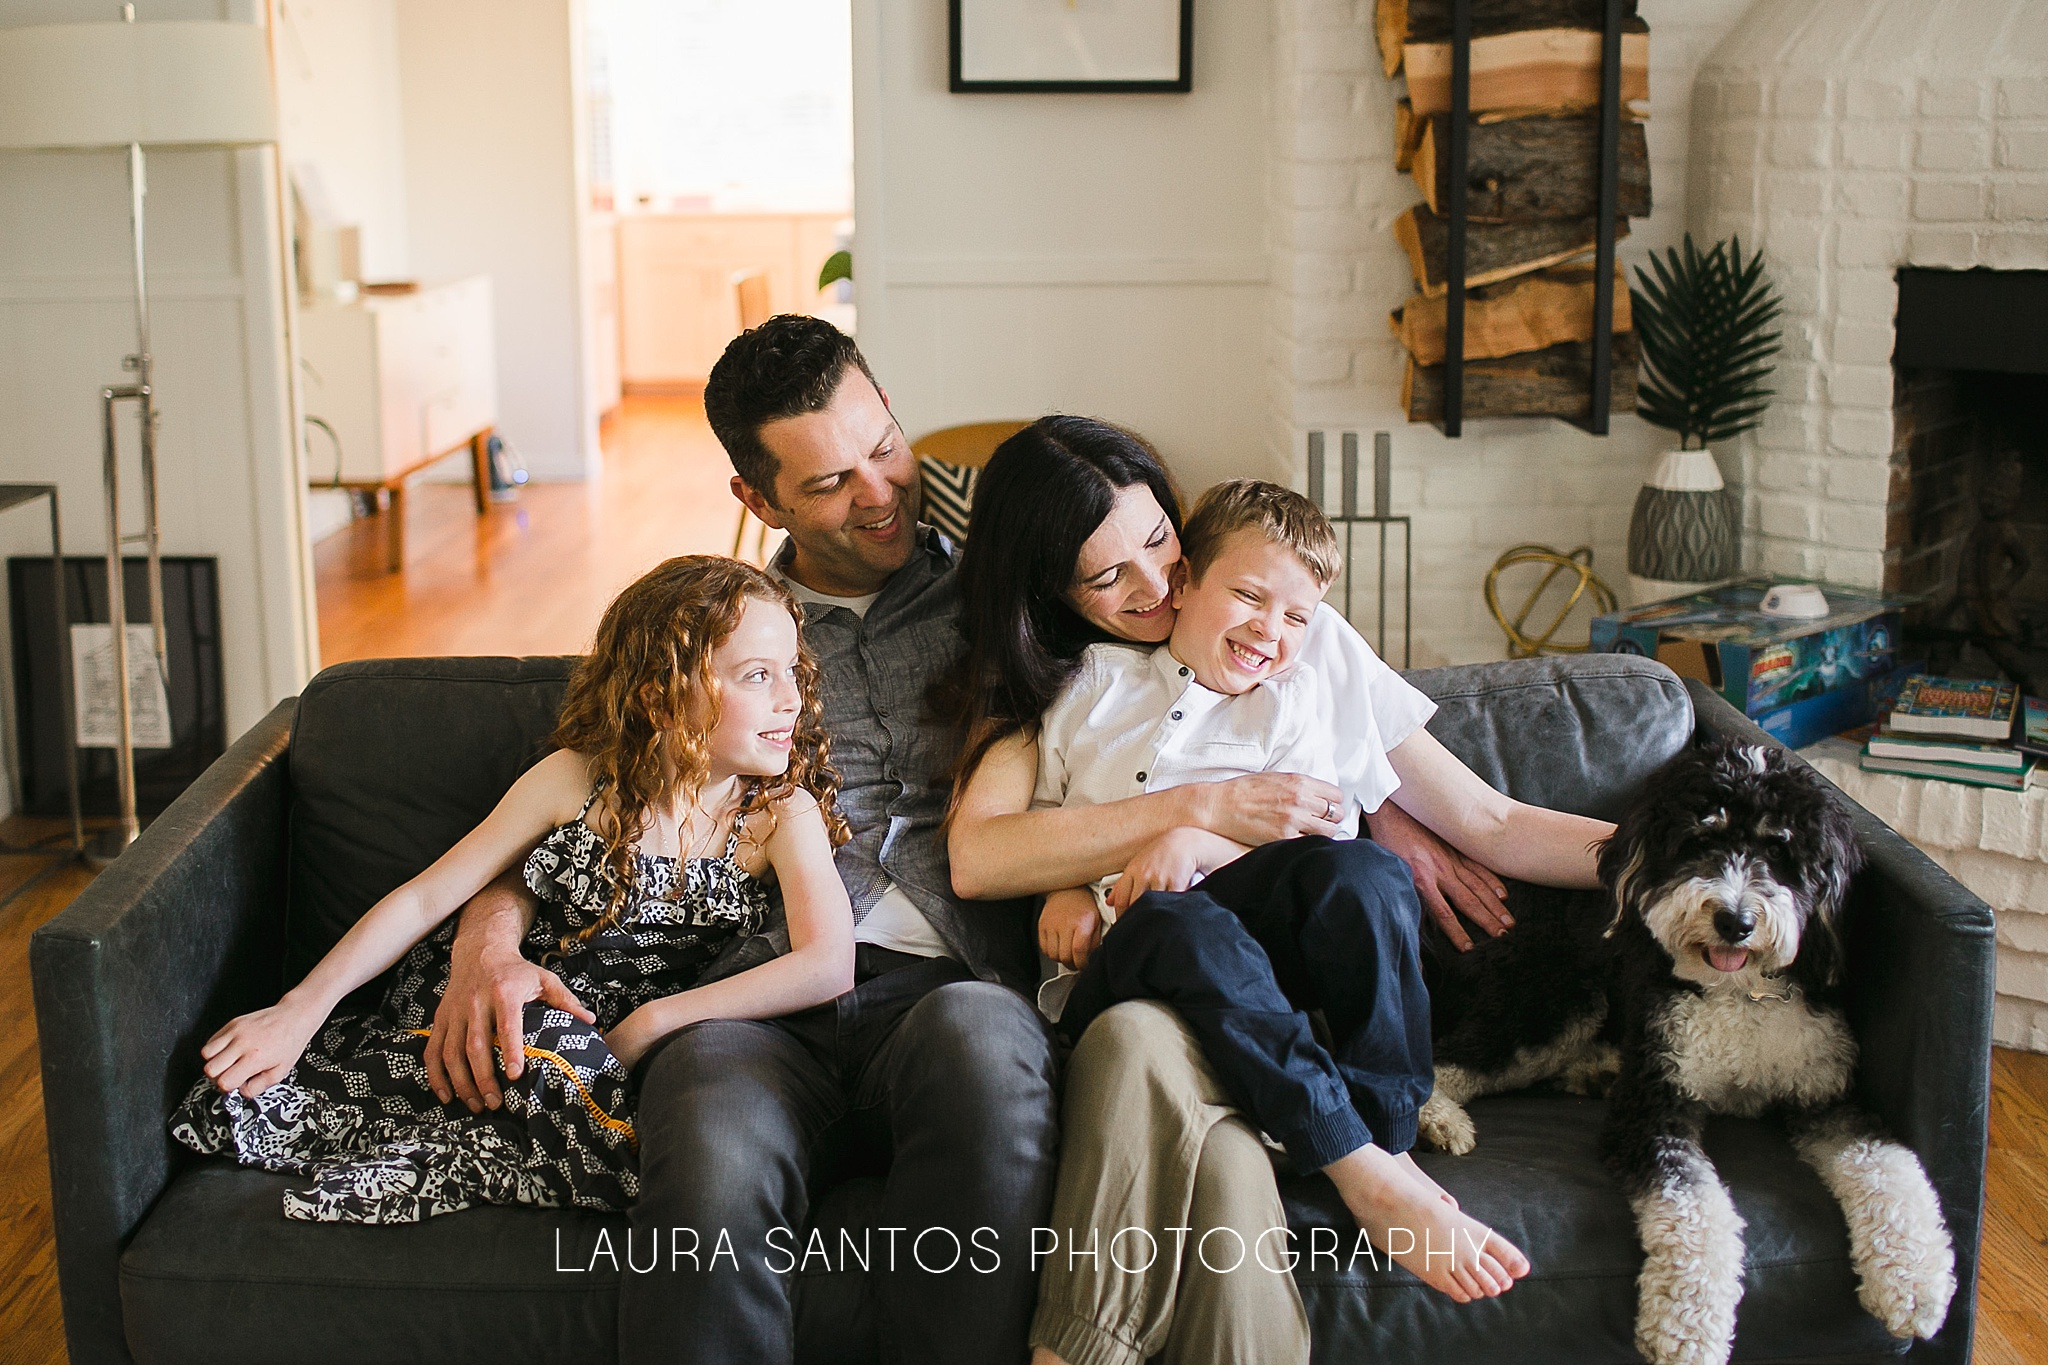 Laura Santos Photography Portland Oregon Family Photographer_0963.jpg